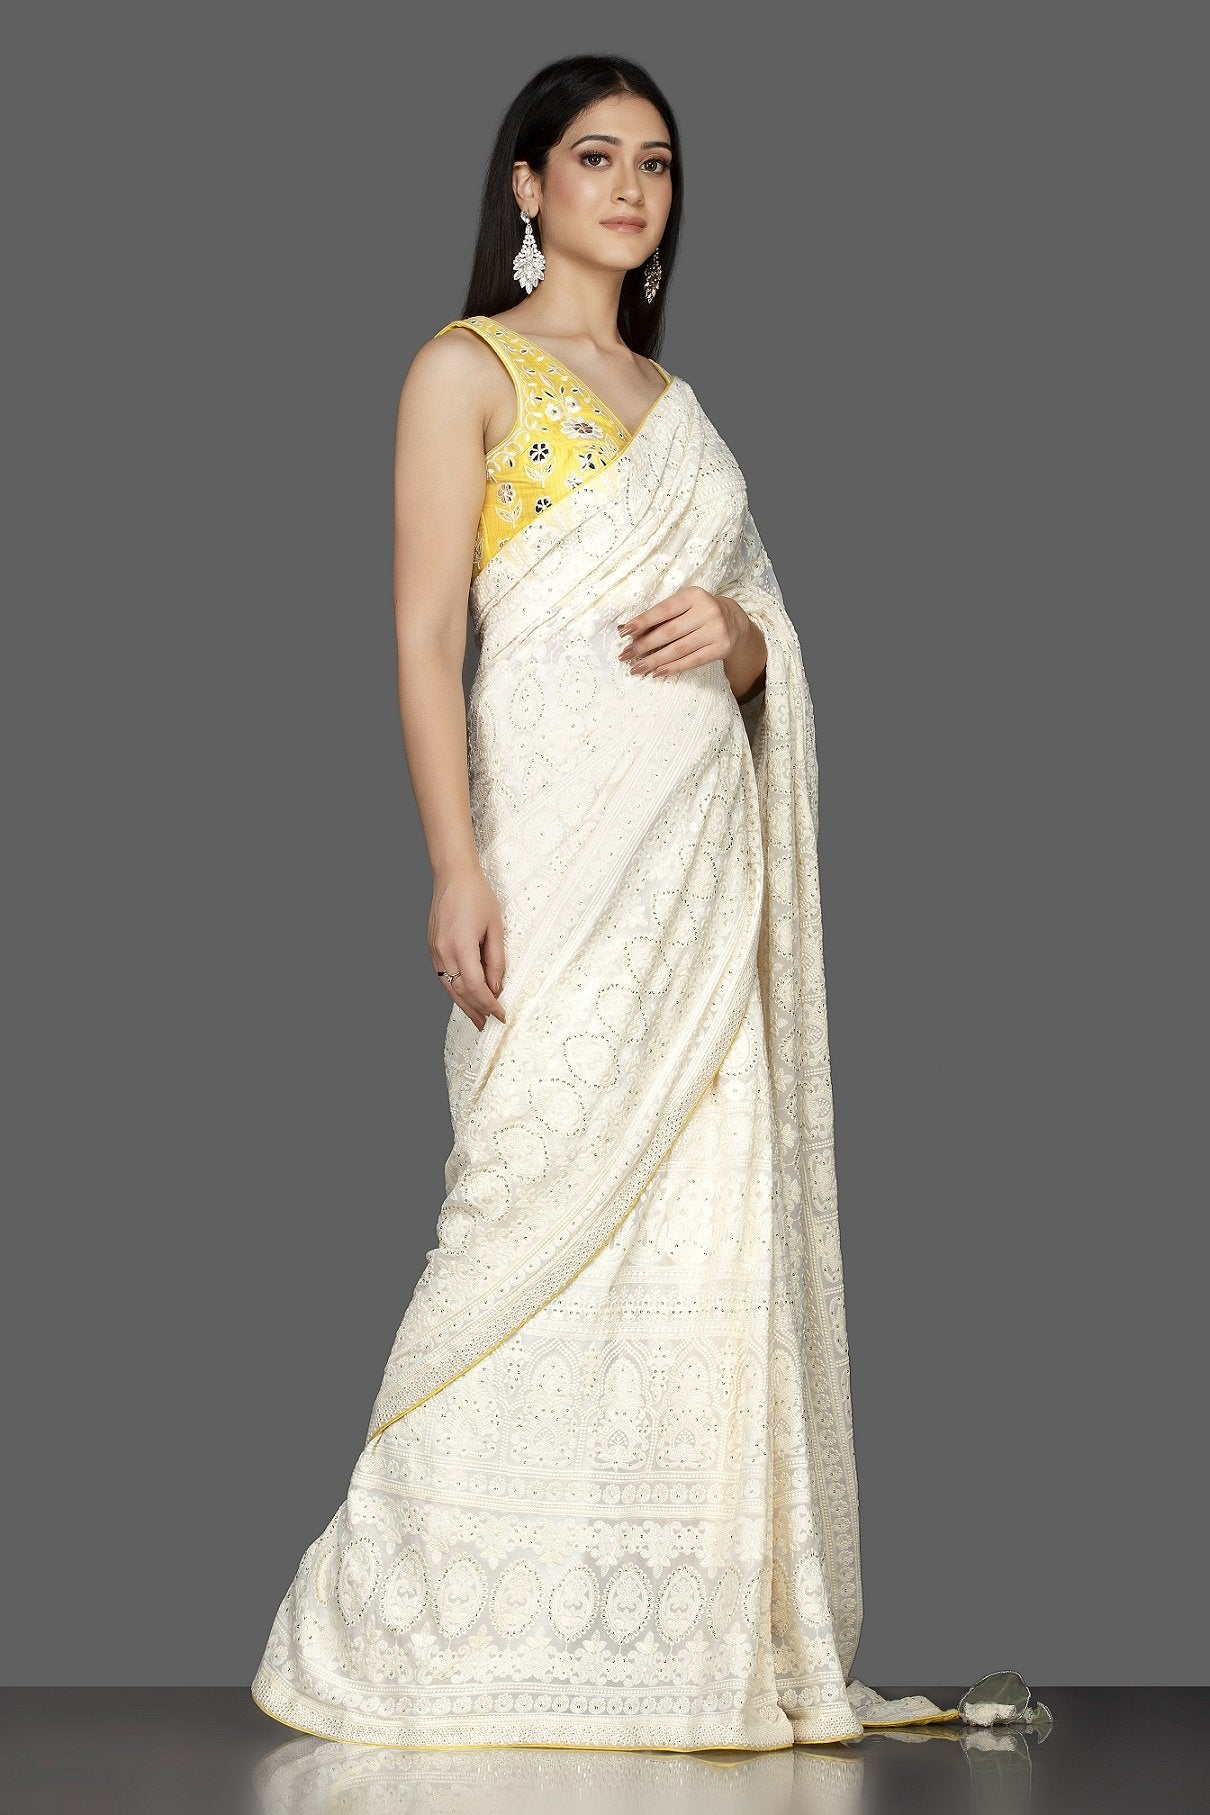 Shop beautiful off-white Lucknowi georgette saree online in USA with yellow embroidered saree blouse. Spread ethnic elegance on weddings and special occasions in splendid designer sarees with blouses, embroidered saris crafted with exquisite Indian craftsmanship from Pure Elegance Indian fashion store in USA.-side